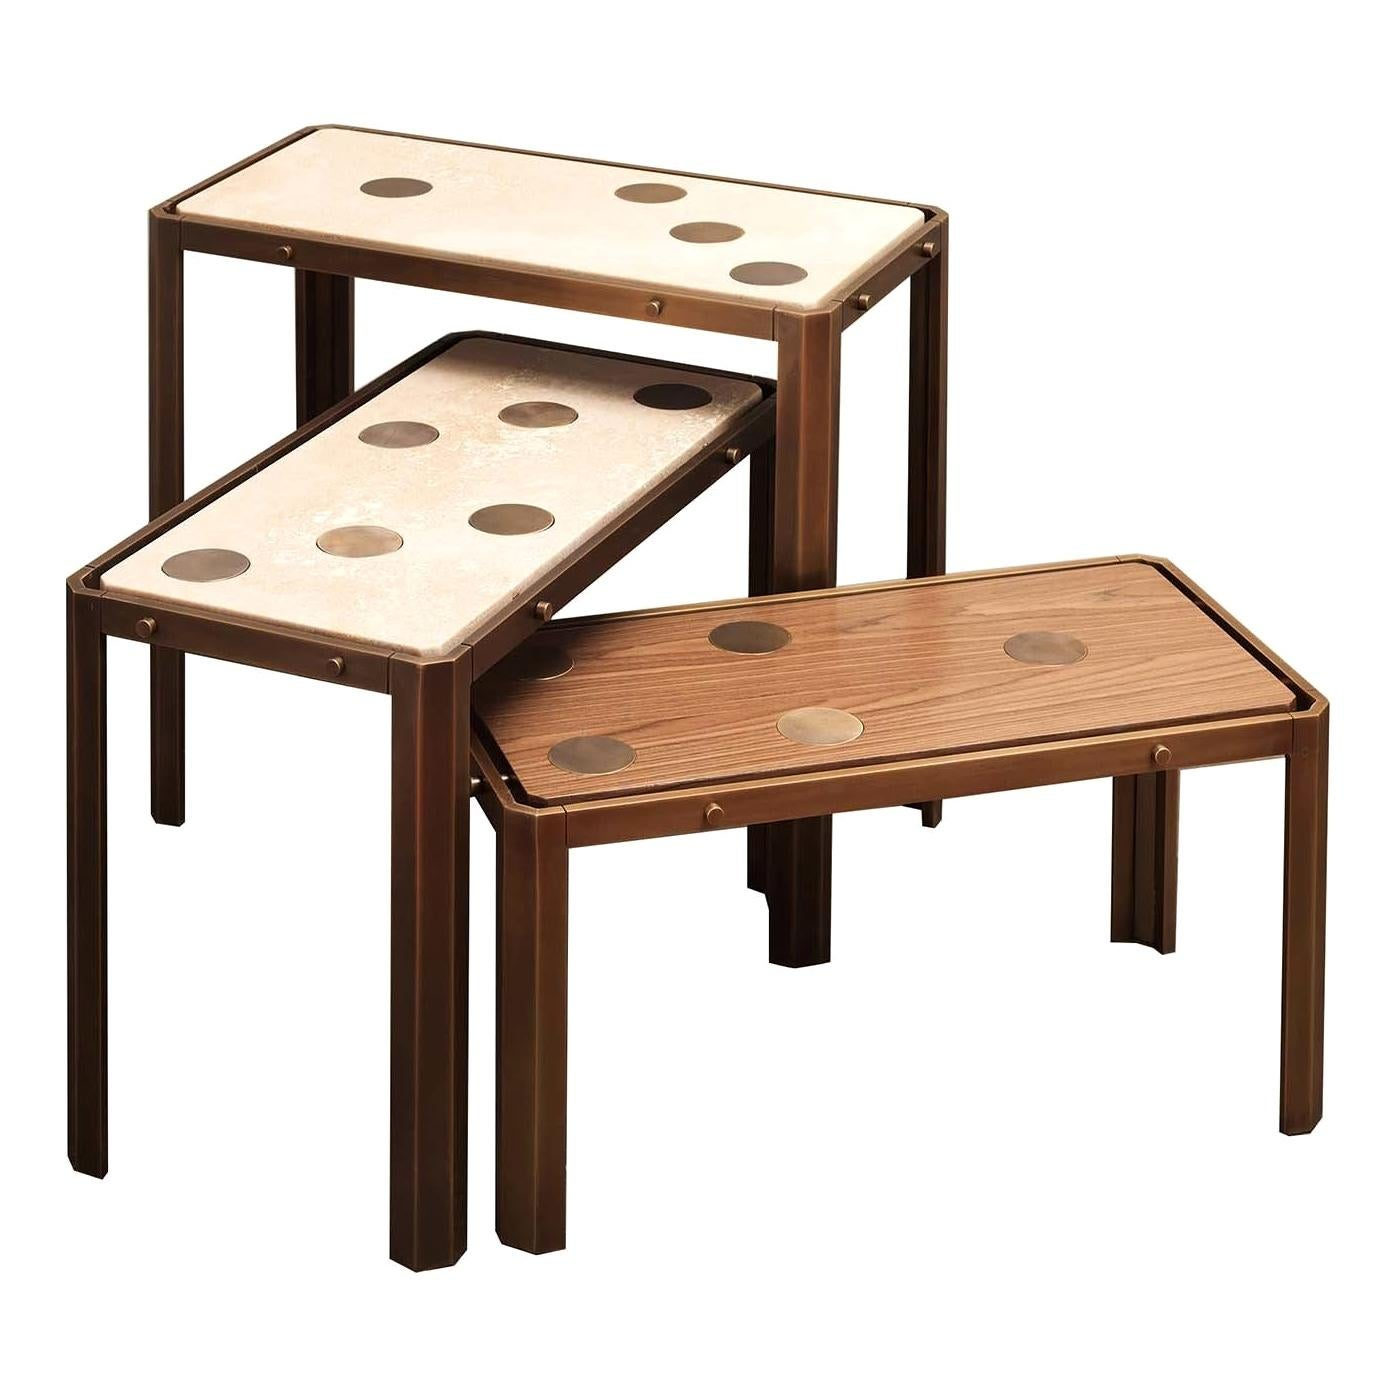 Domino Set of 3 Nesting Tables by Ciarmoli Queda Studio